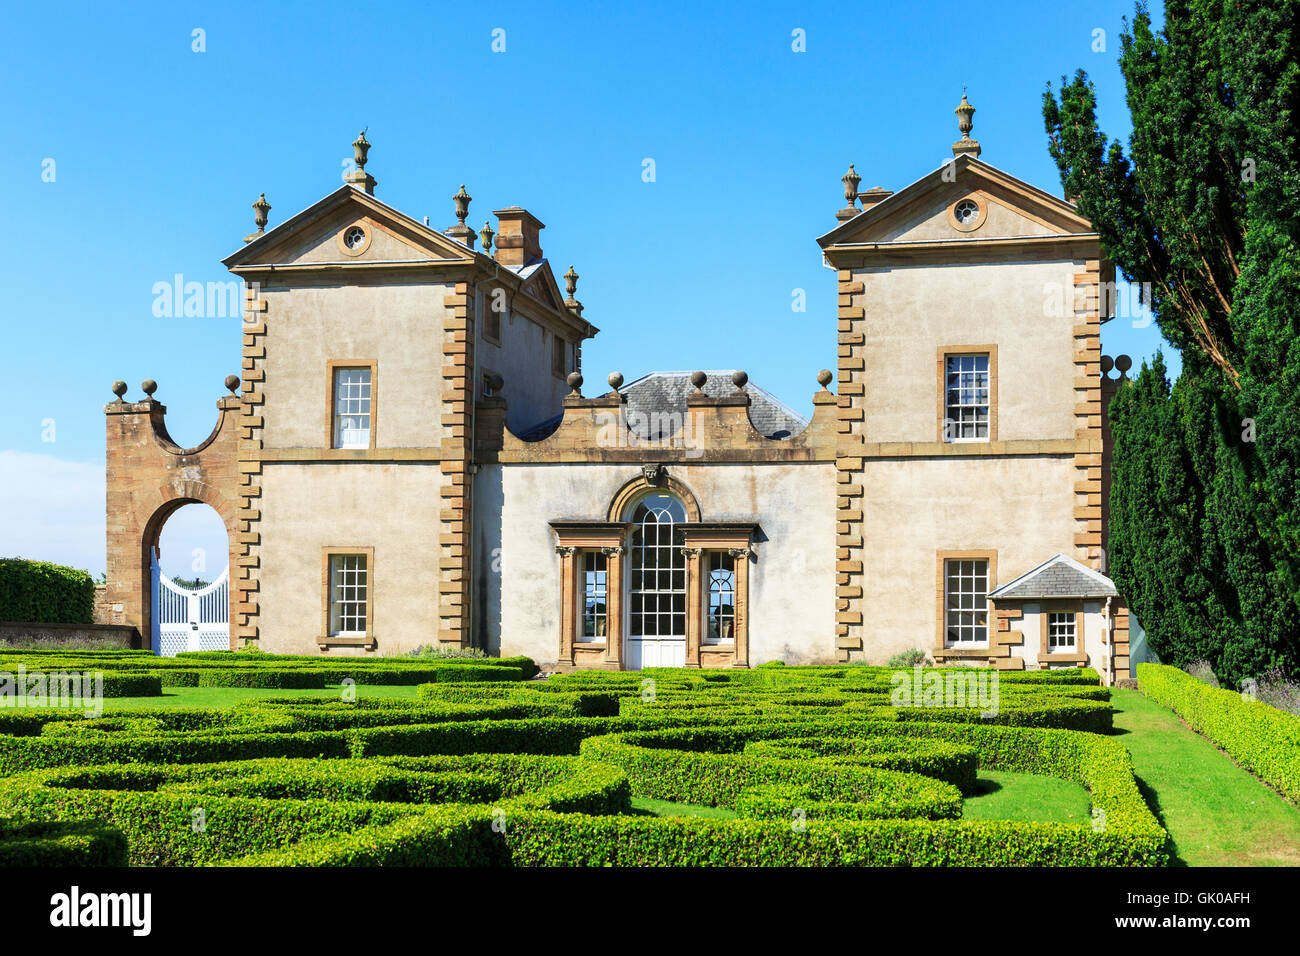 Chatelherault House, near Hamilton, Lanarkshire, 18th  century palladian built house, designed by William Adam - Stock Image